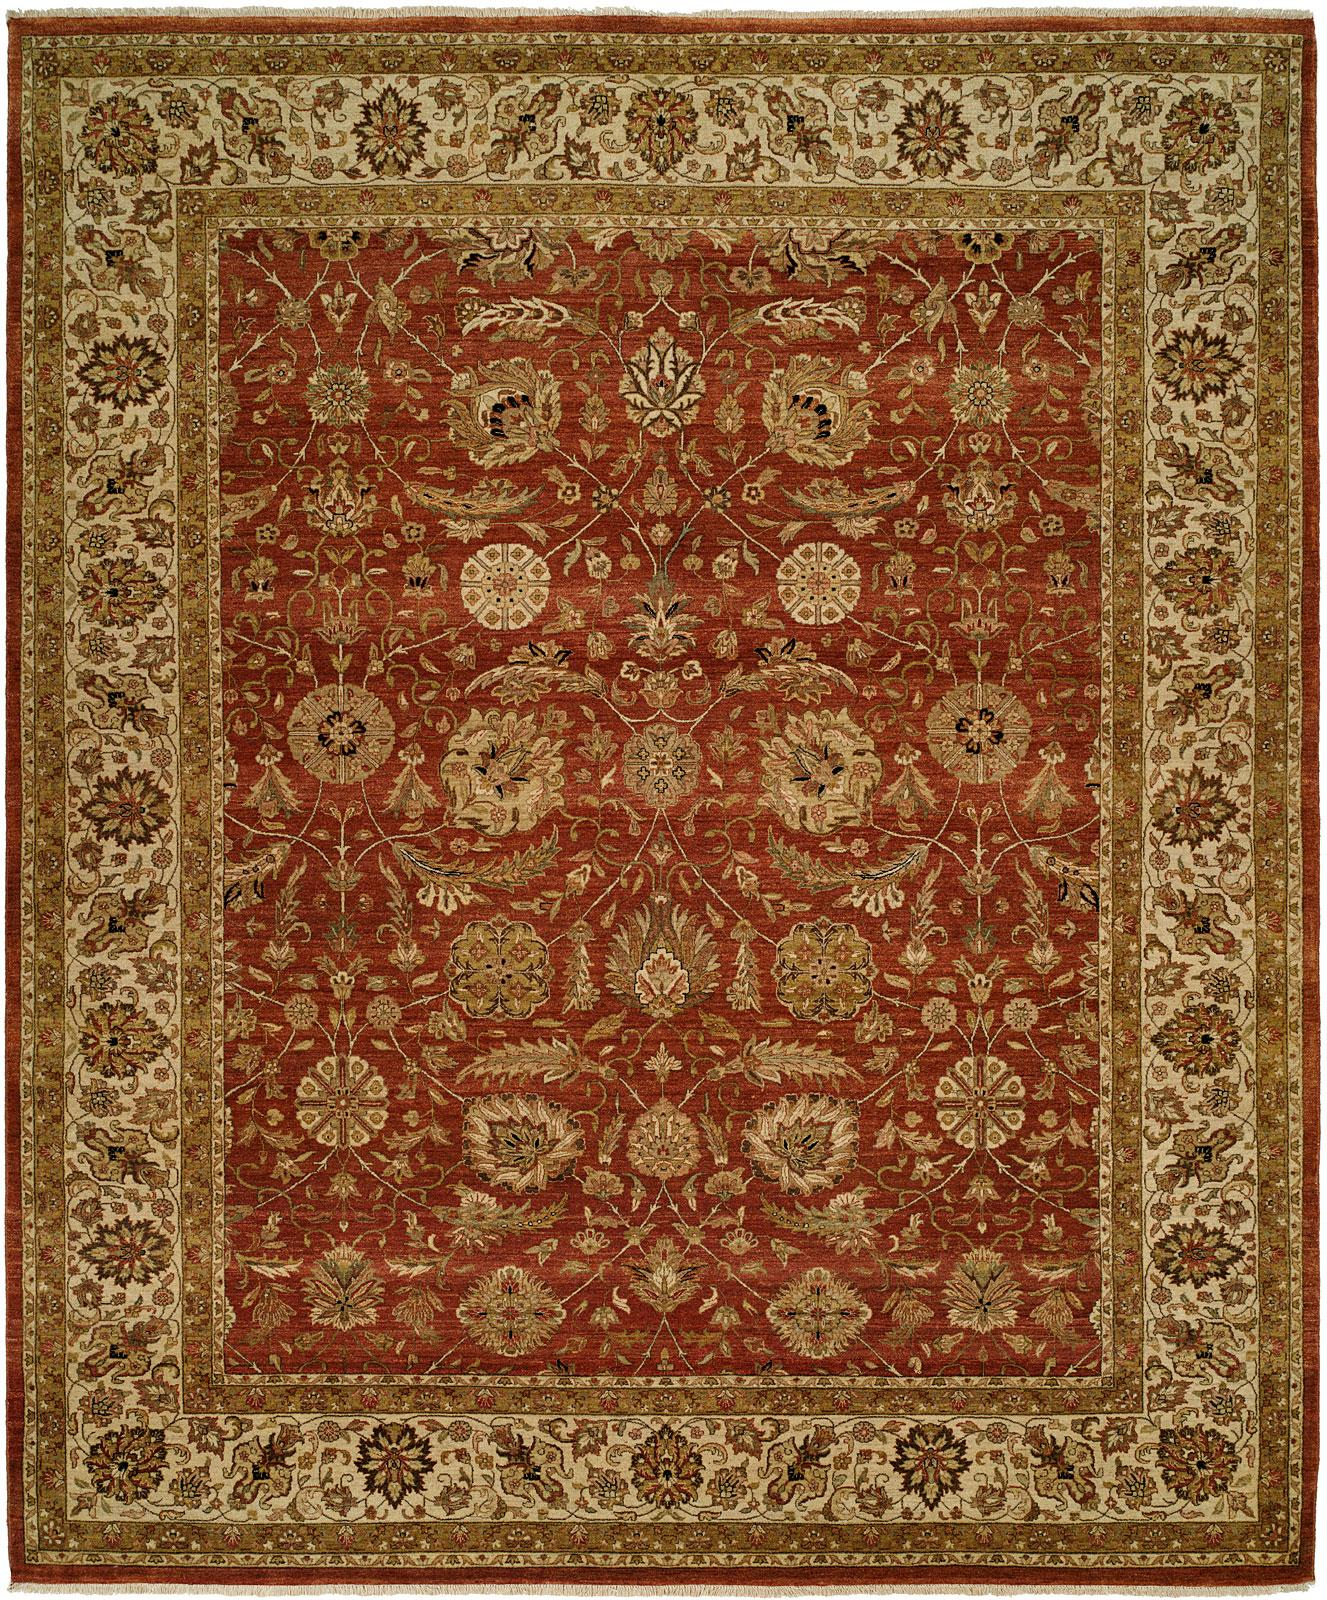 Rug: #001066 Retail: $13,586.40 Sale: $7,990.00 Size: 9' x12' Color: Rose/Ivory Made in India Hand Knotted Wool